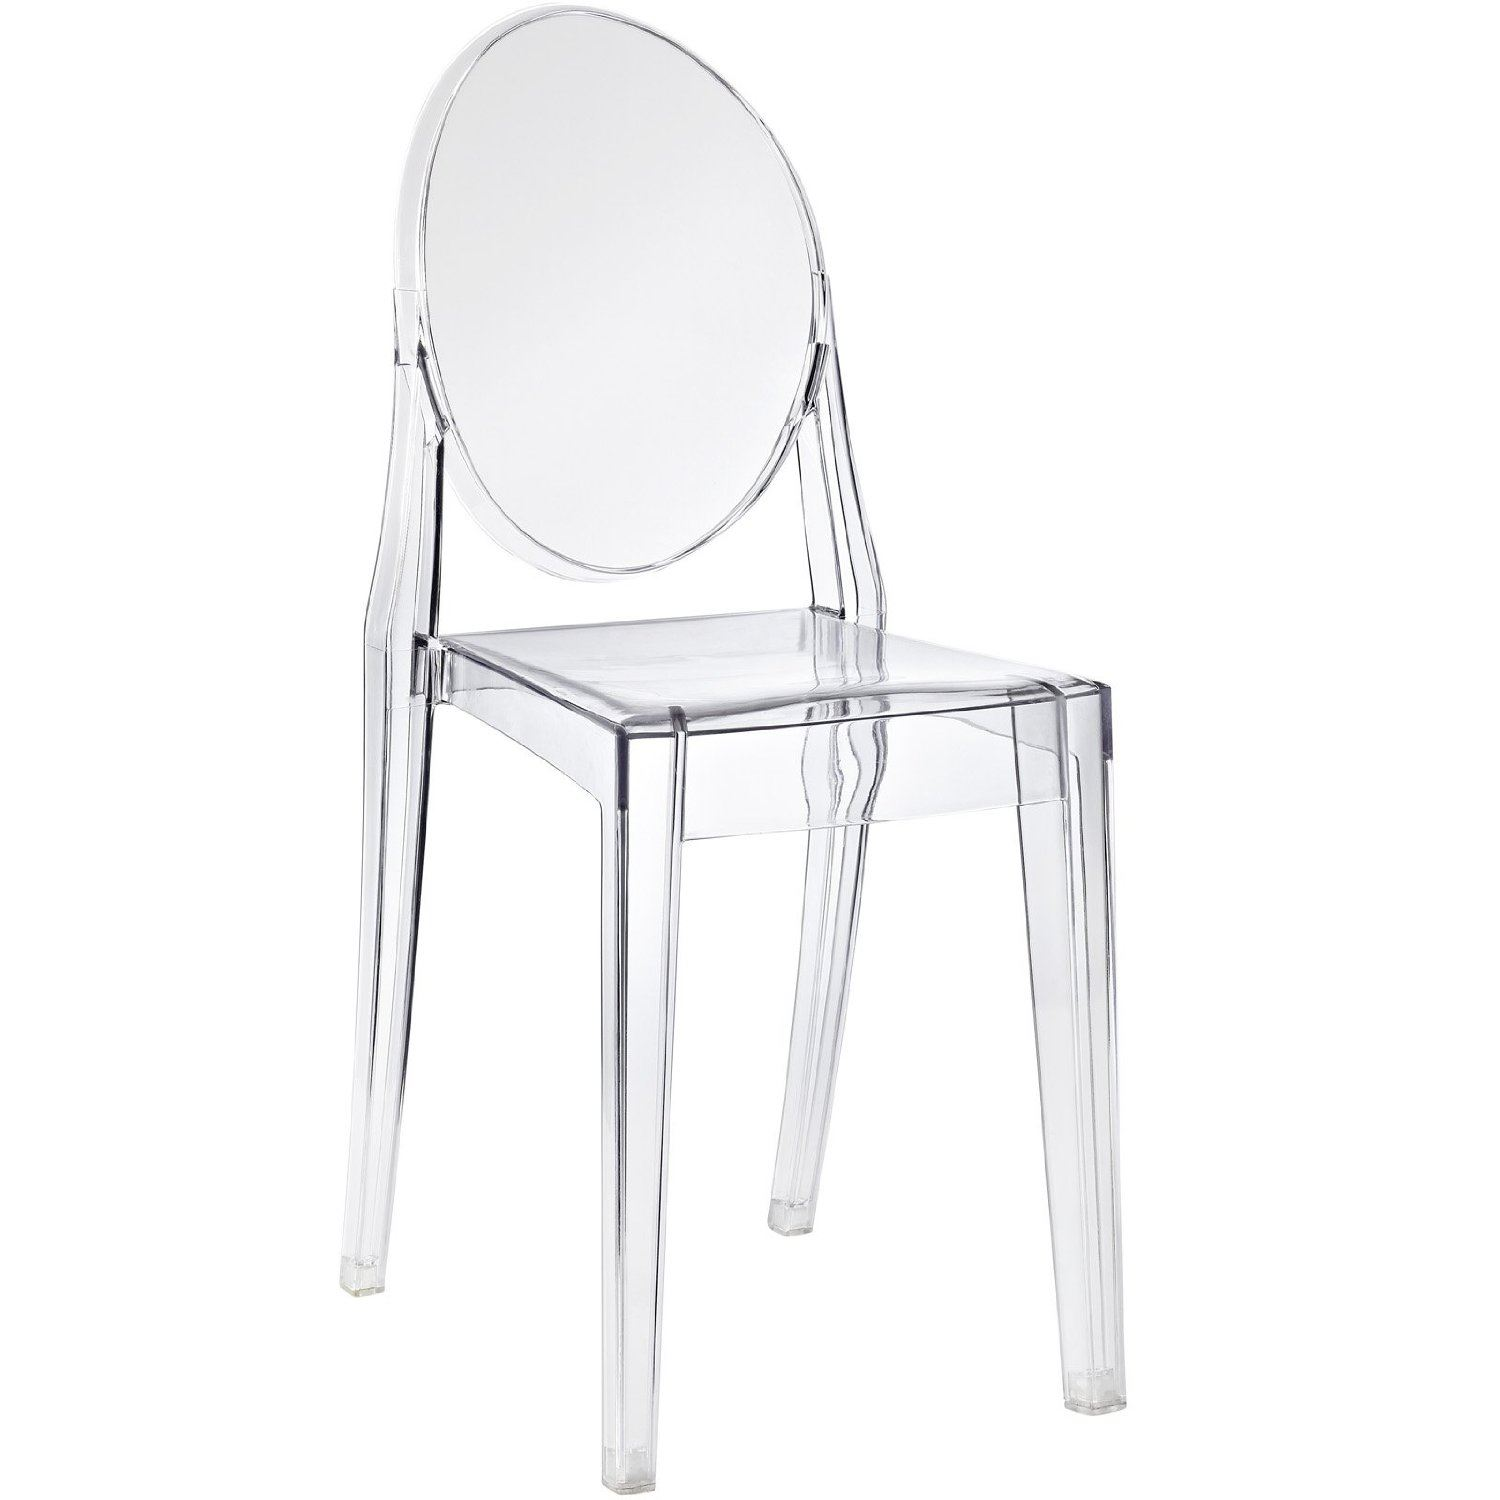 Eames inspired eiffel louis ghost chair or no arm dining chairs retro panton ebay - Eames ghost chair ...